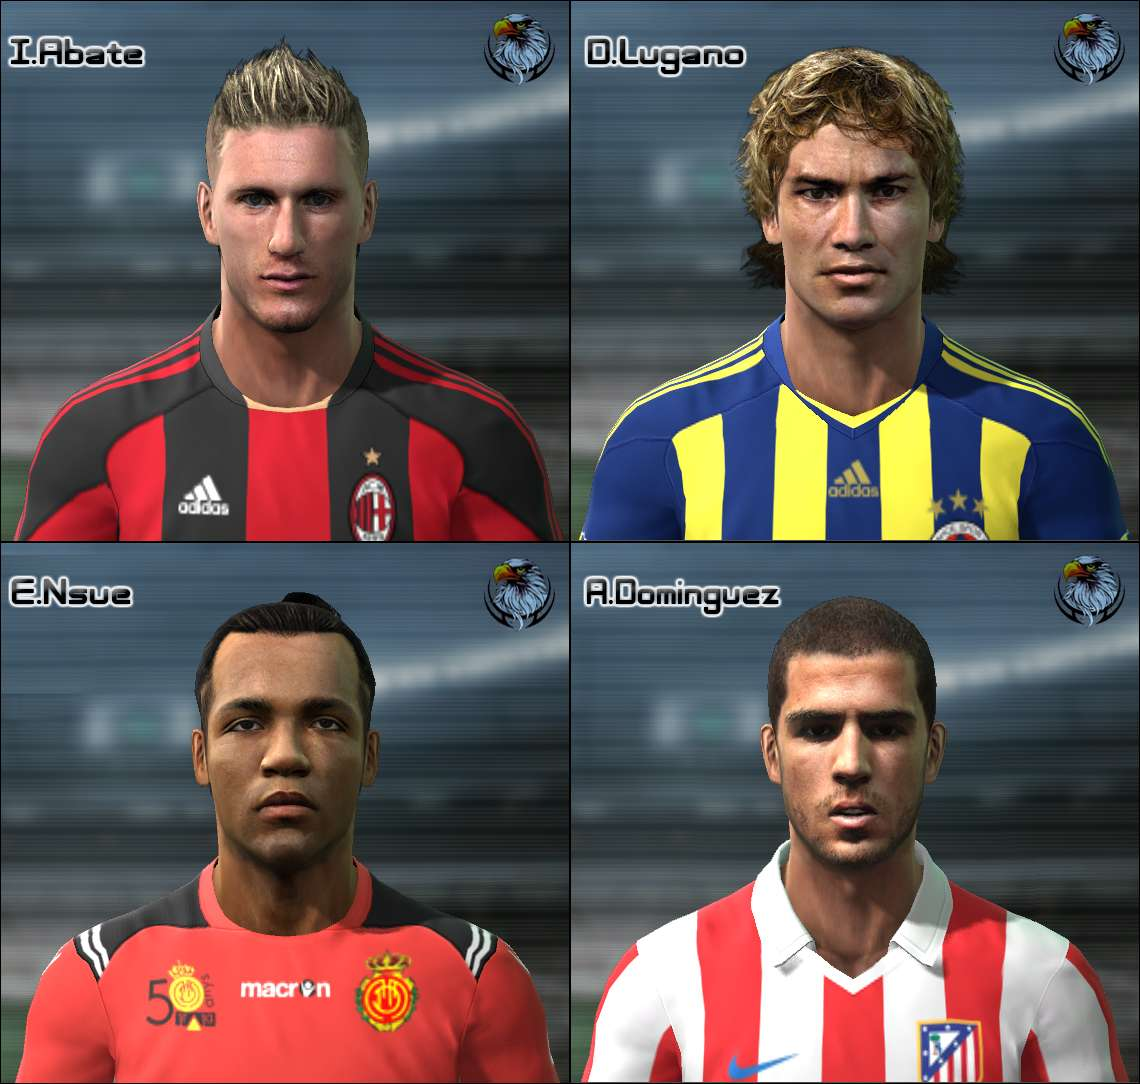 Ultigamerz Pes 2010 Pes 2011 Face: PES 2011 Mini Face Pack By Nickless Vol.2 • PESPatchs